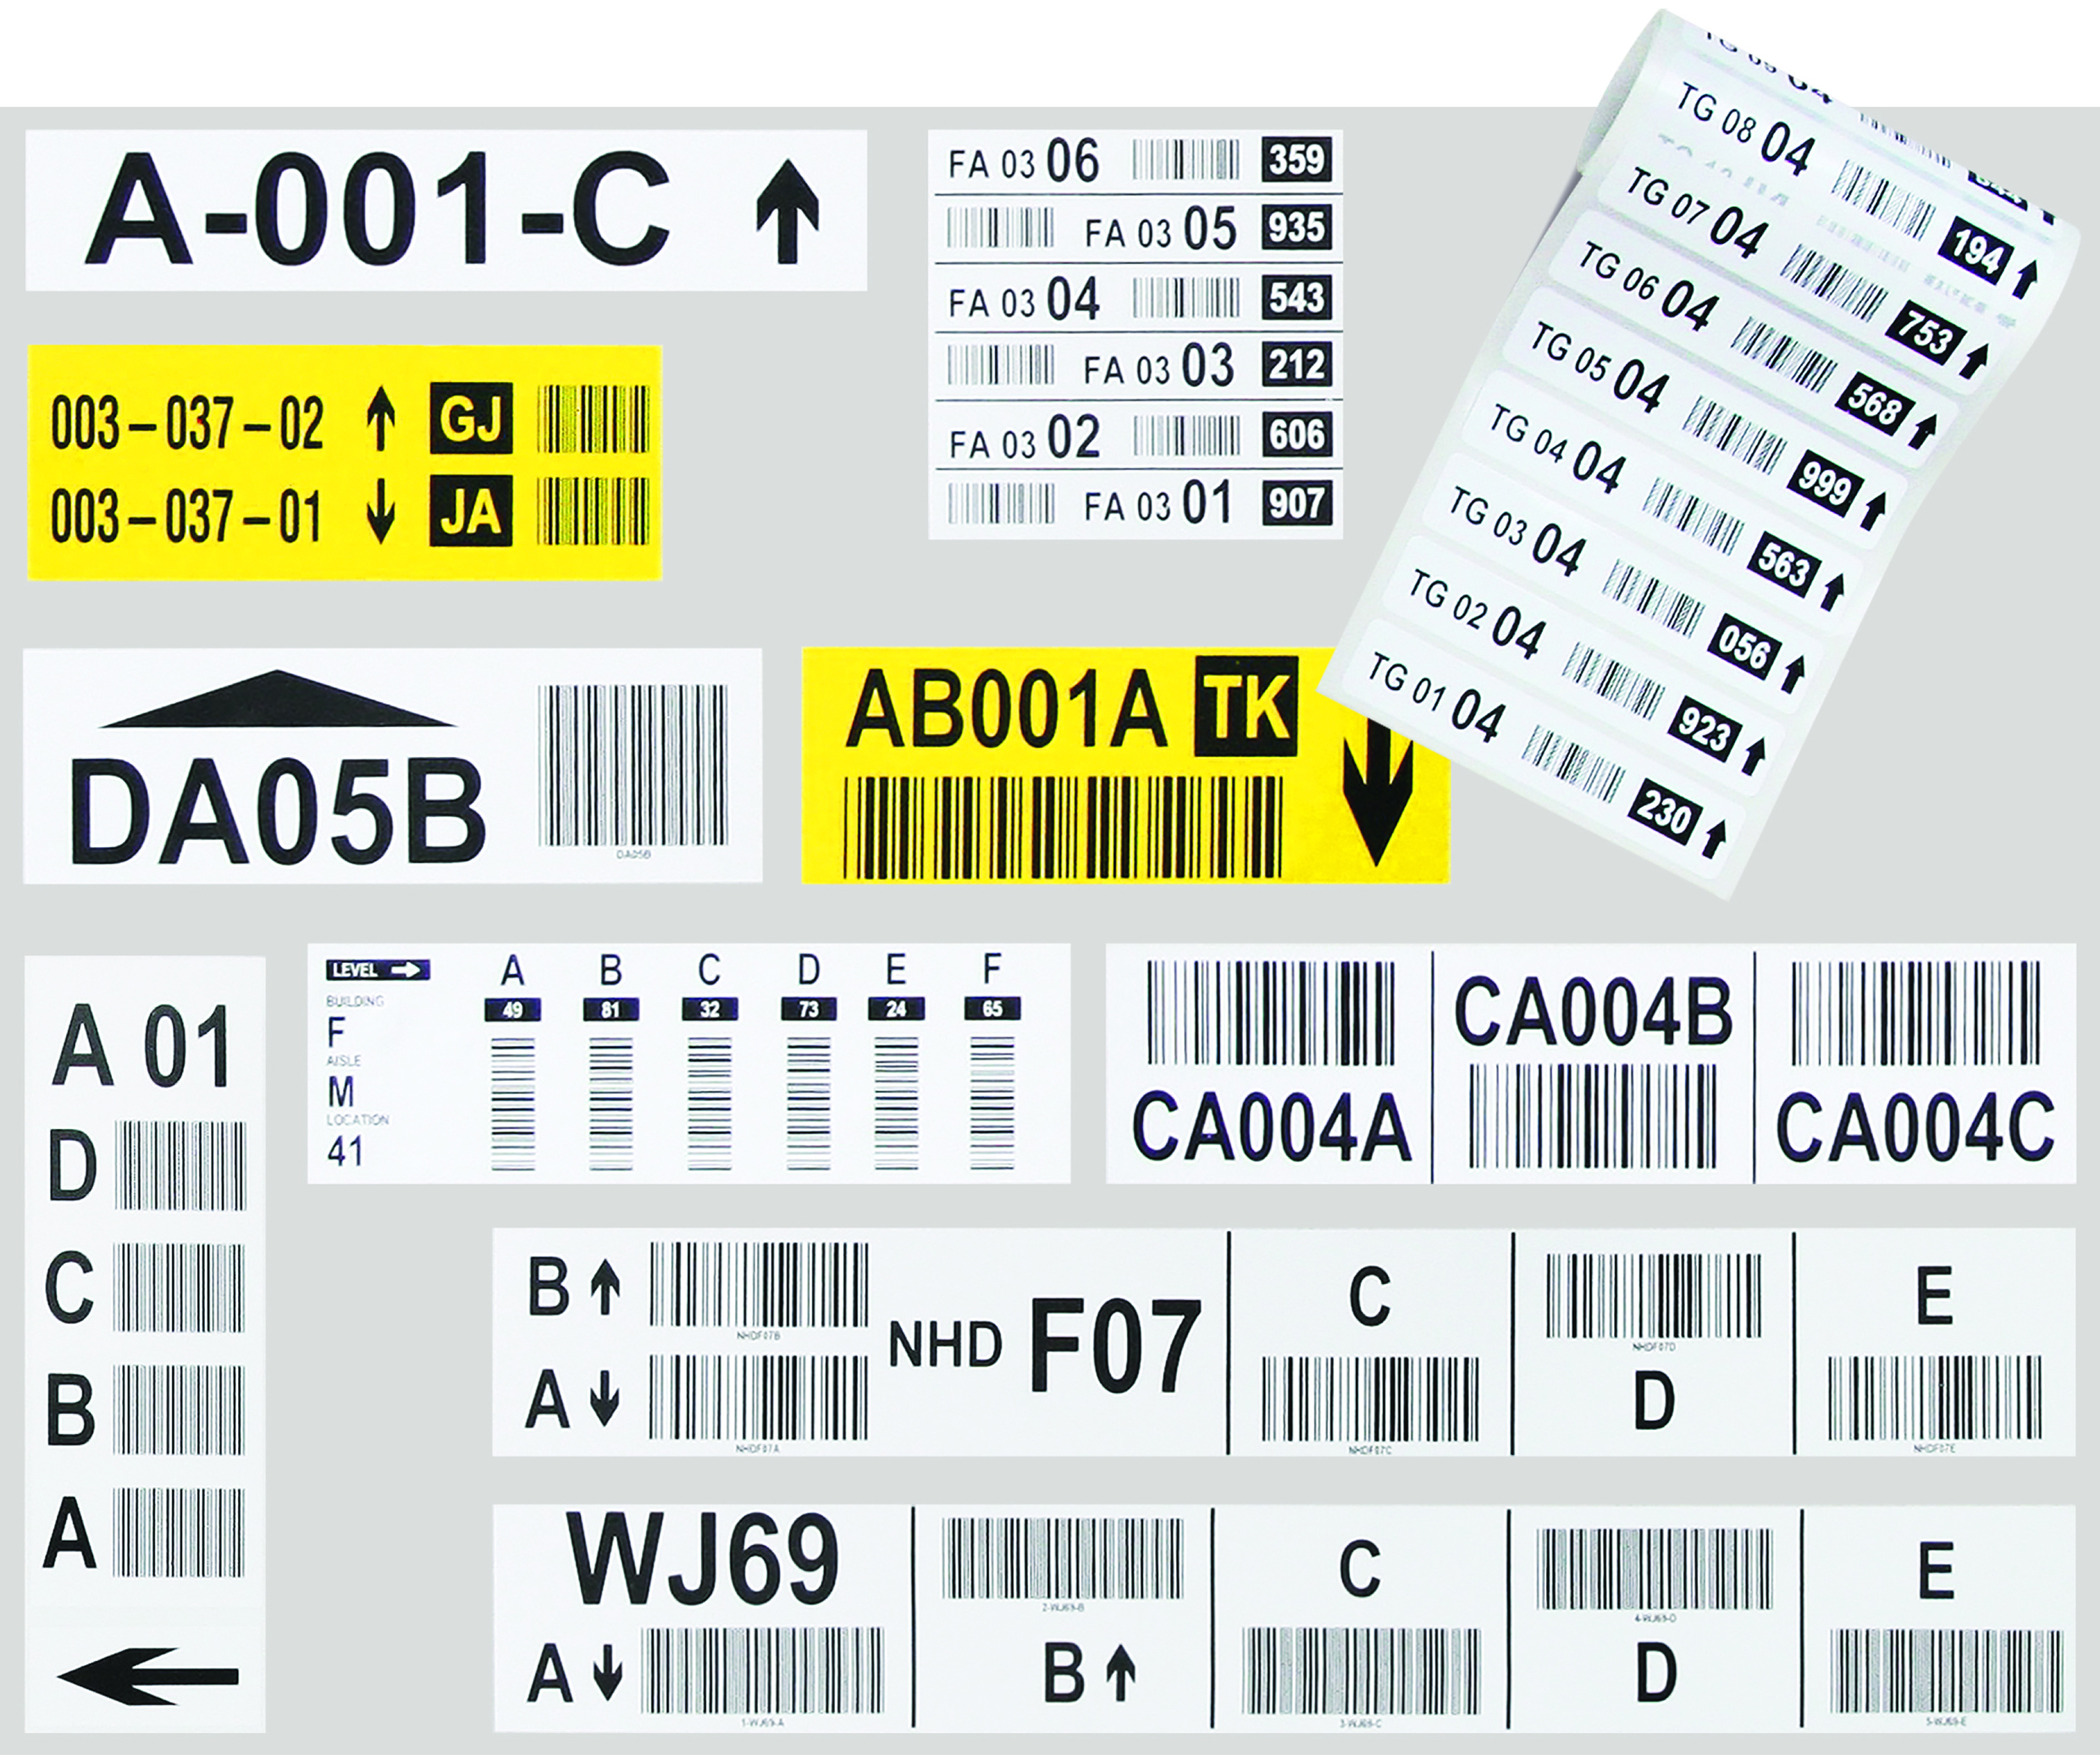 Racking Beam Location Code Labels